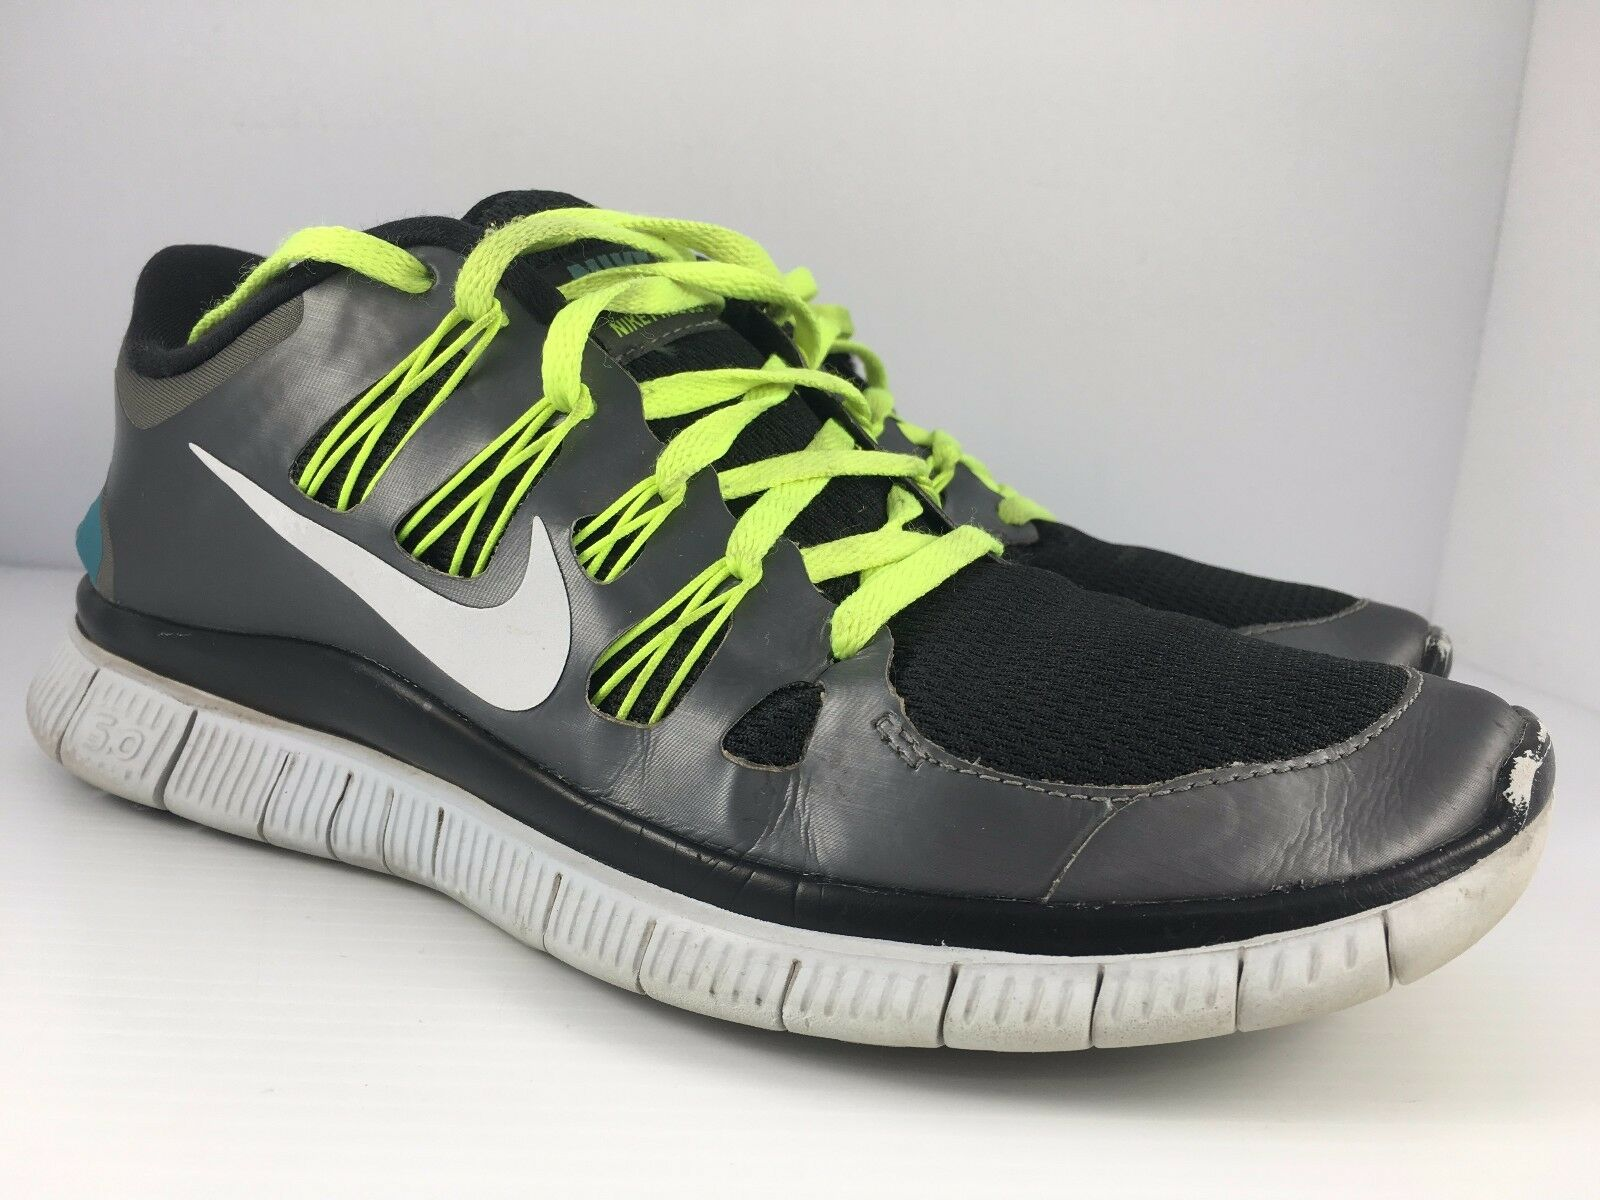 NIKE Free 5.0+  Women US 9.5 Black Gray + Neon Volt Running Shoes 580591-004 The most popular shoes for men and women